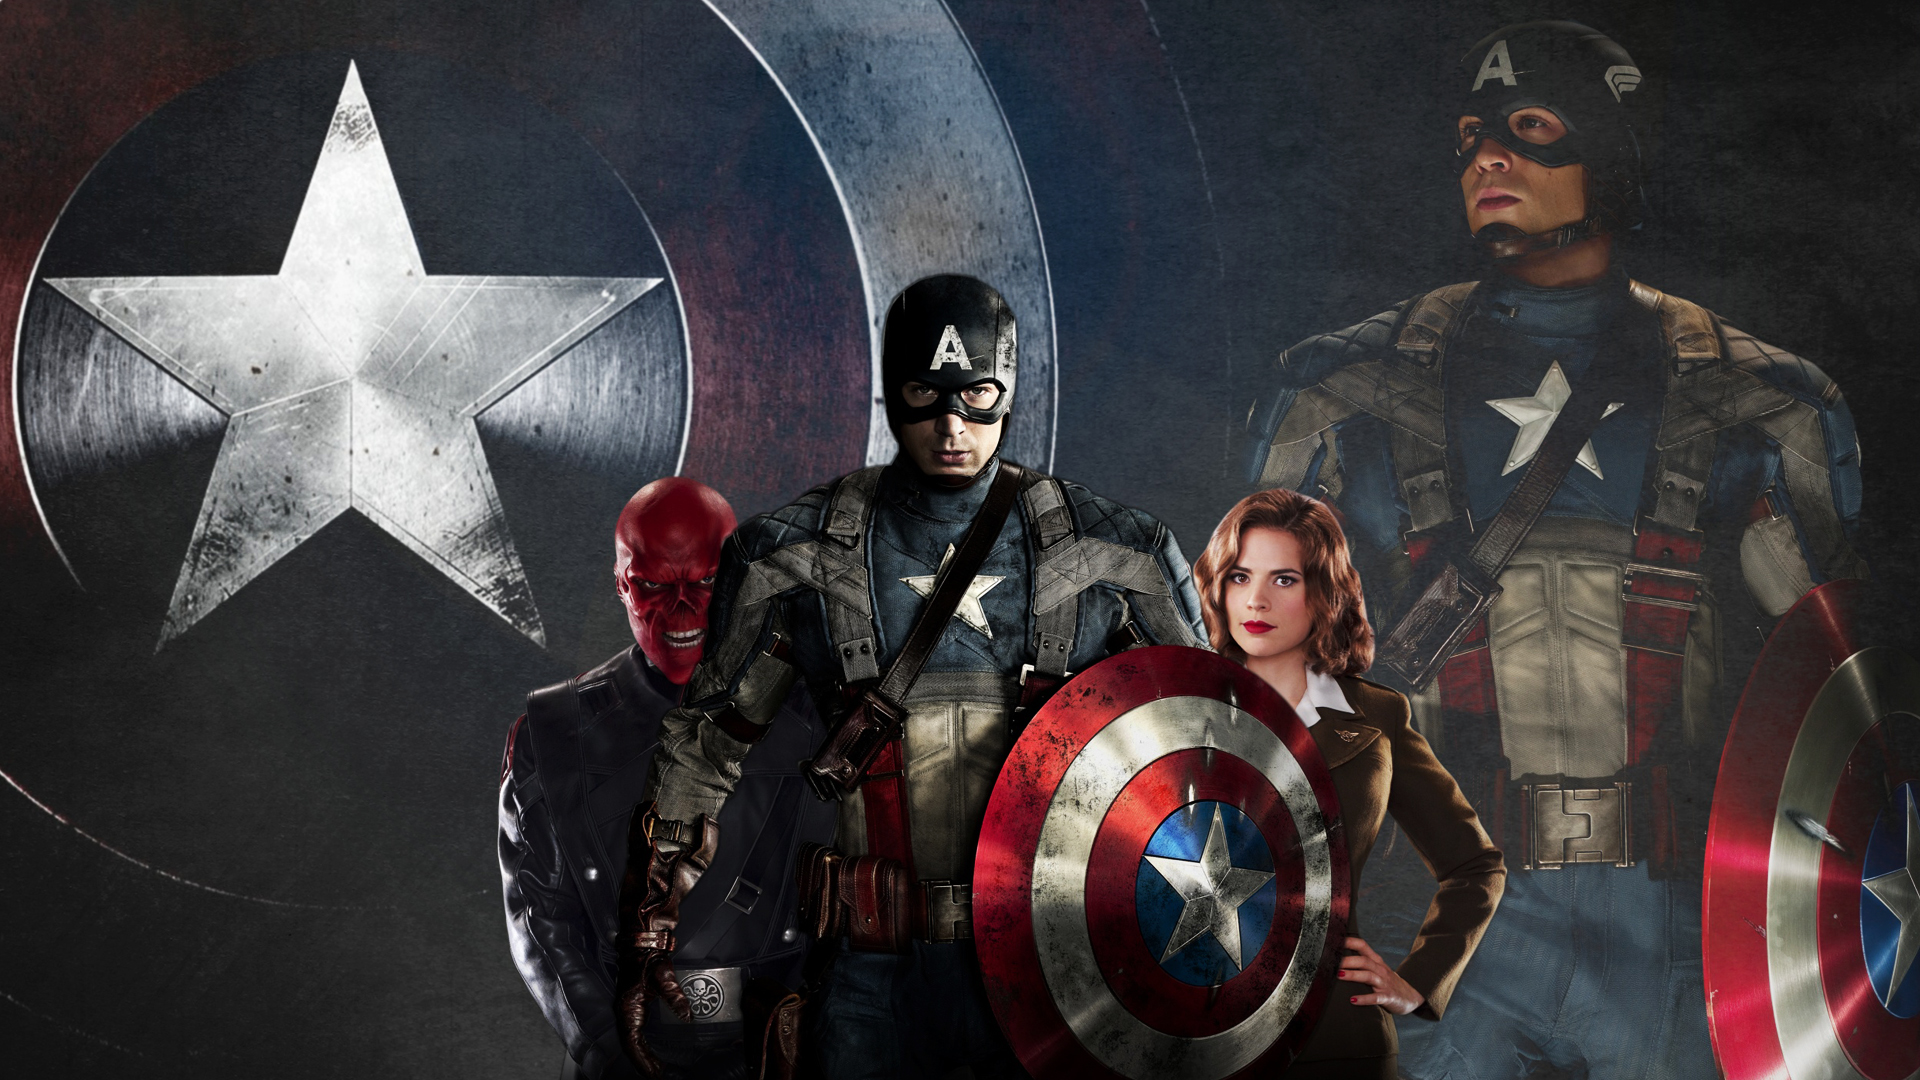 Captain america wallpapers high quality download free - Captain america screensaver download ...